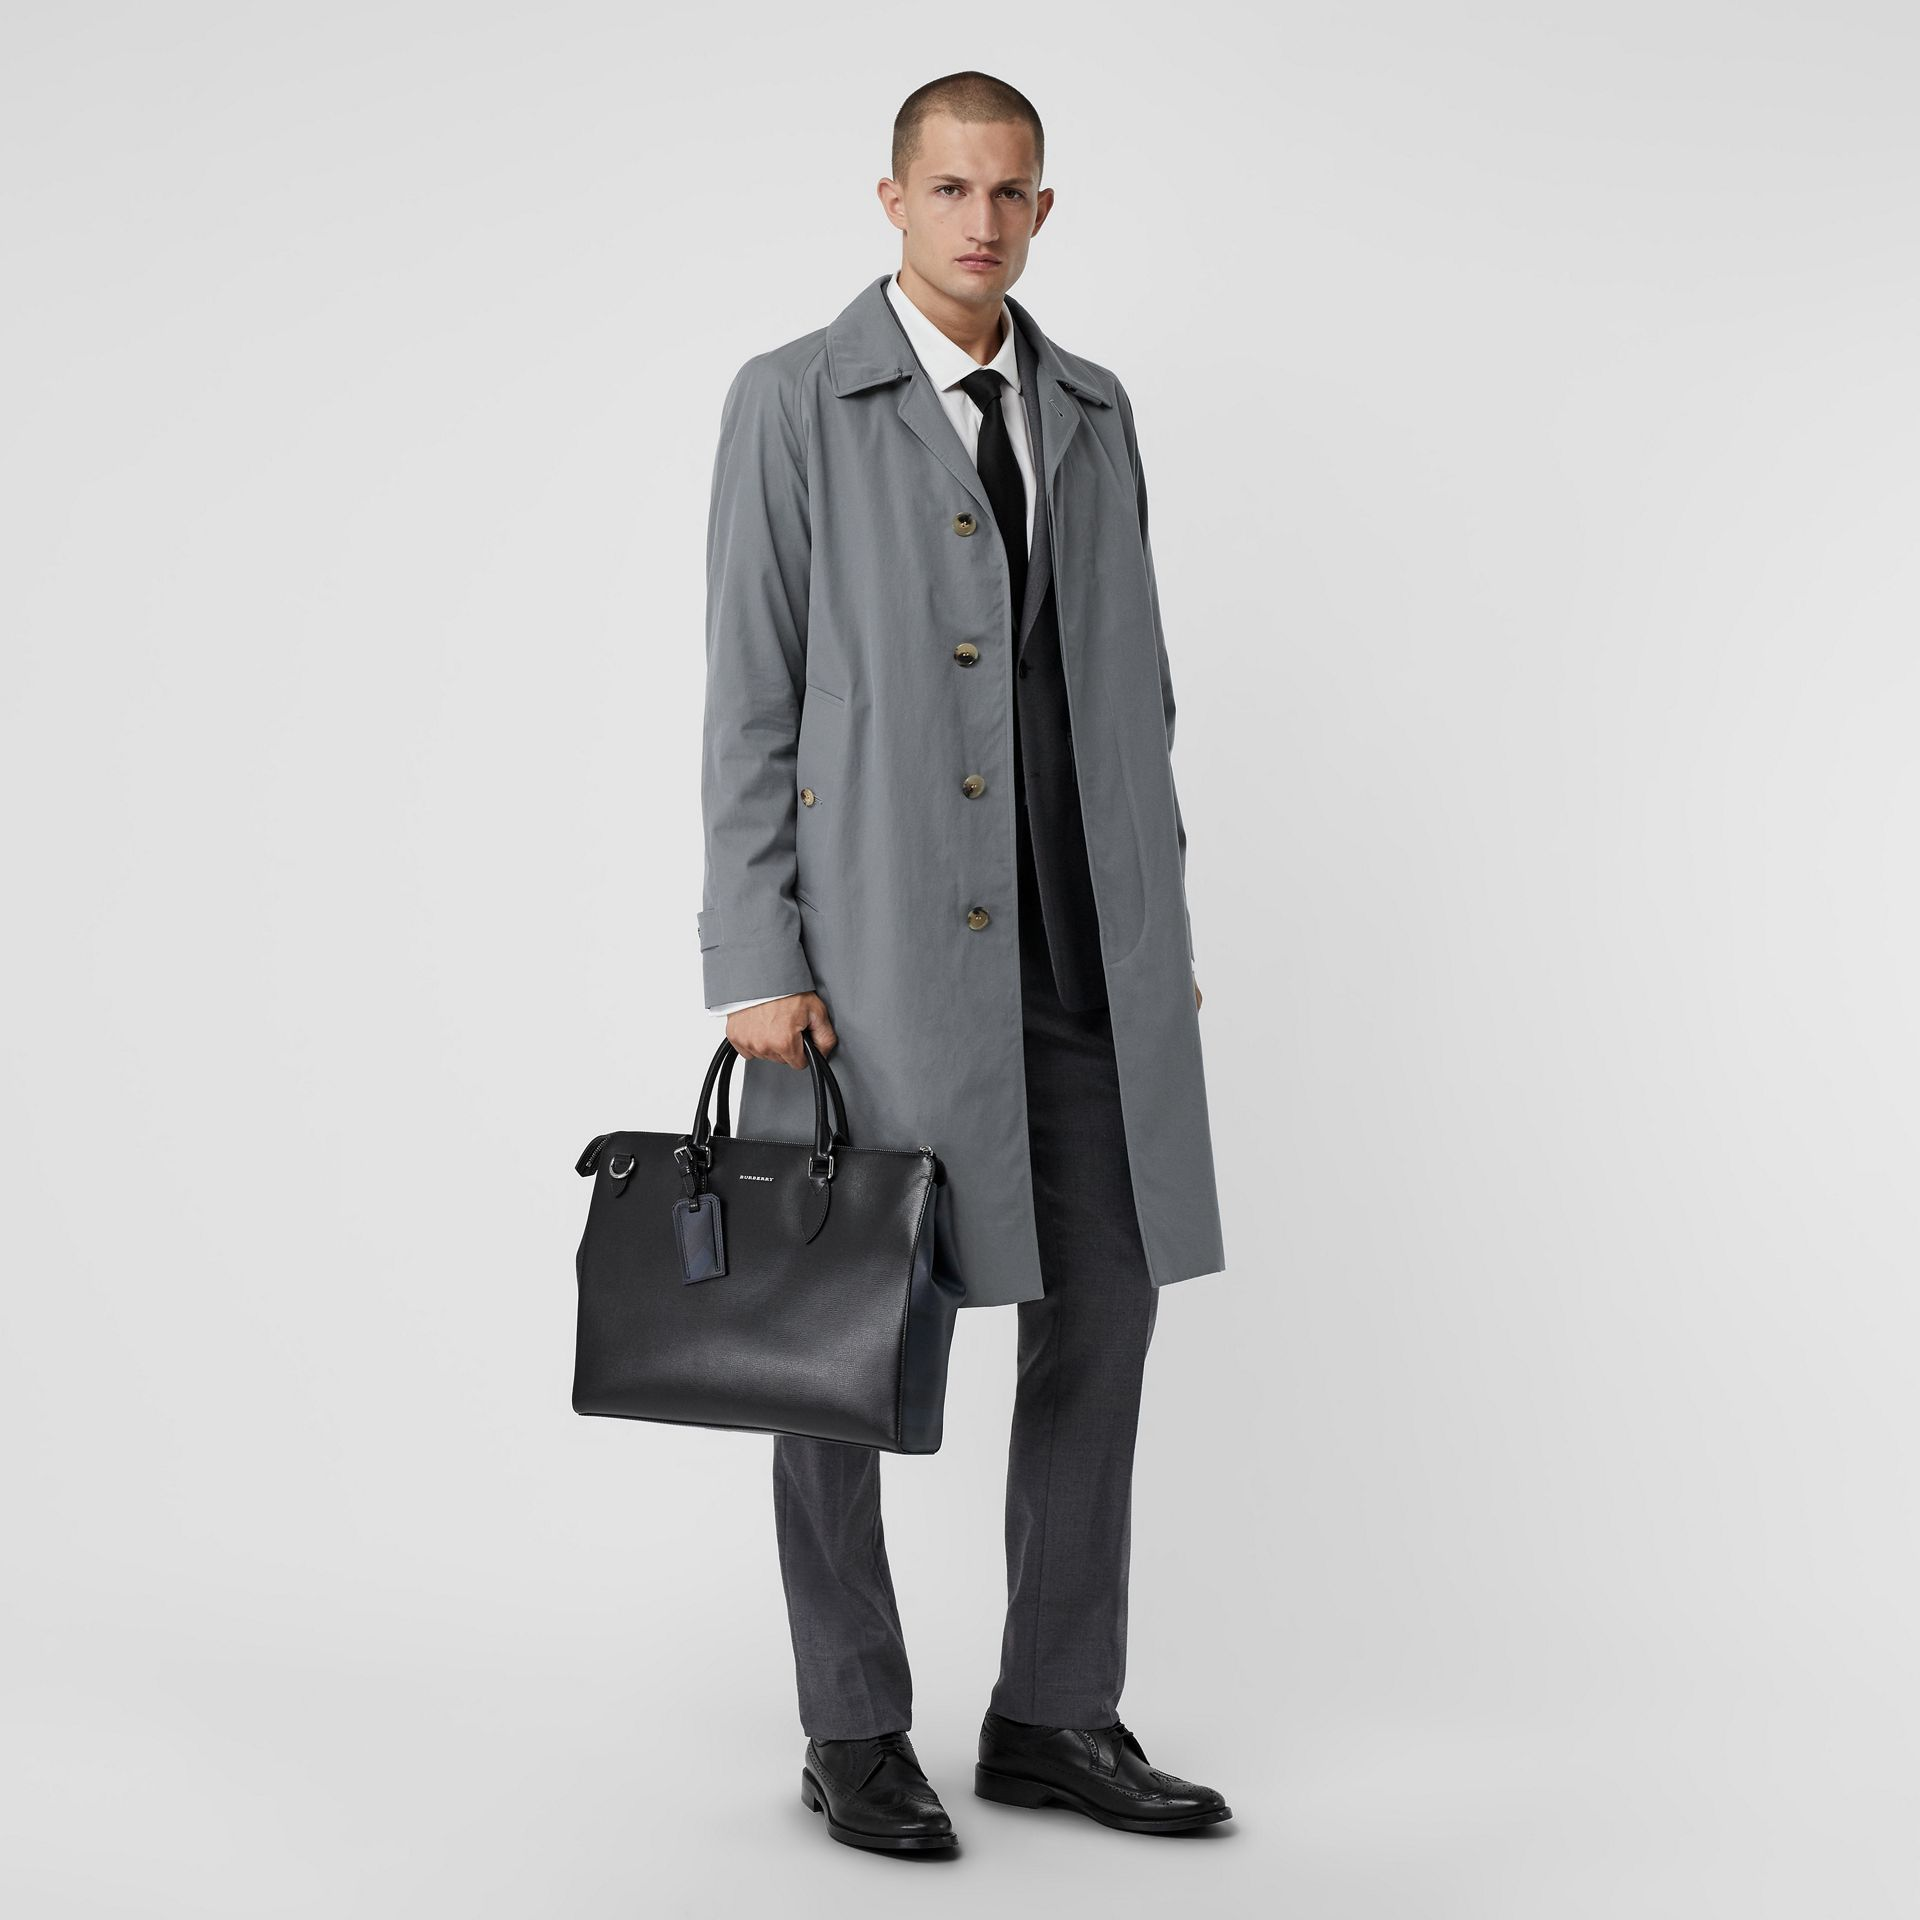 Large London Leather Briefcase in Black - Men | Burberry - gallery image 1